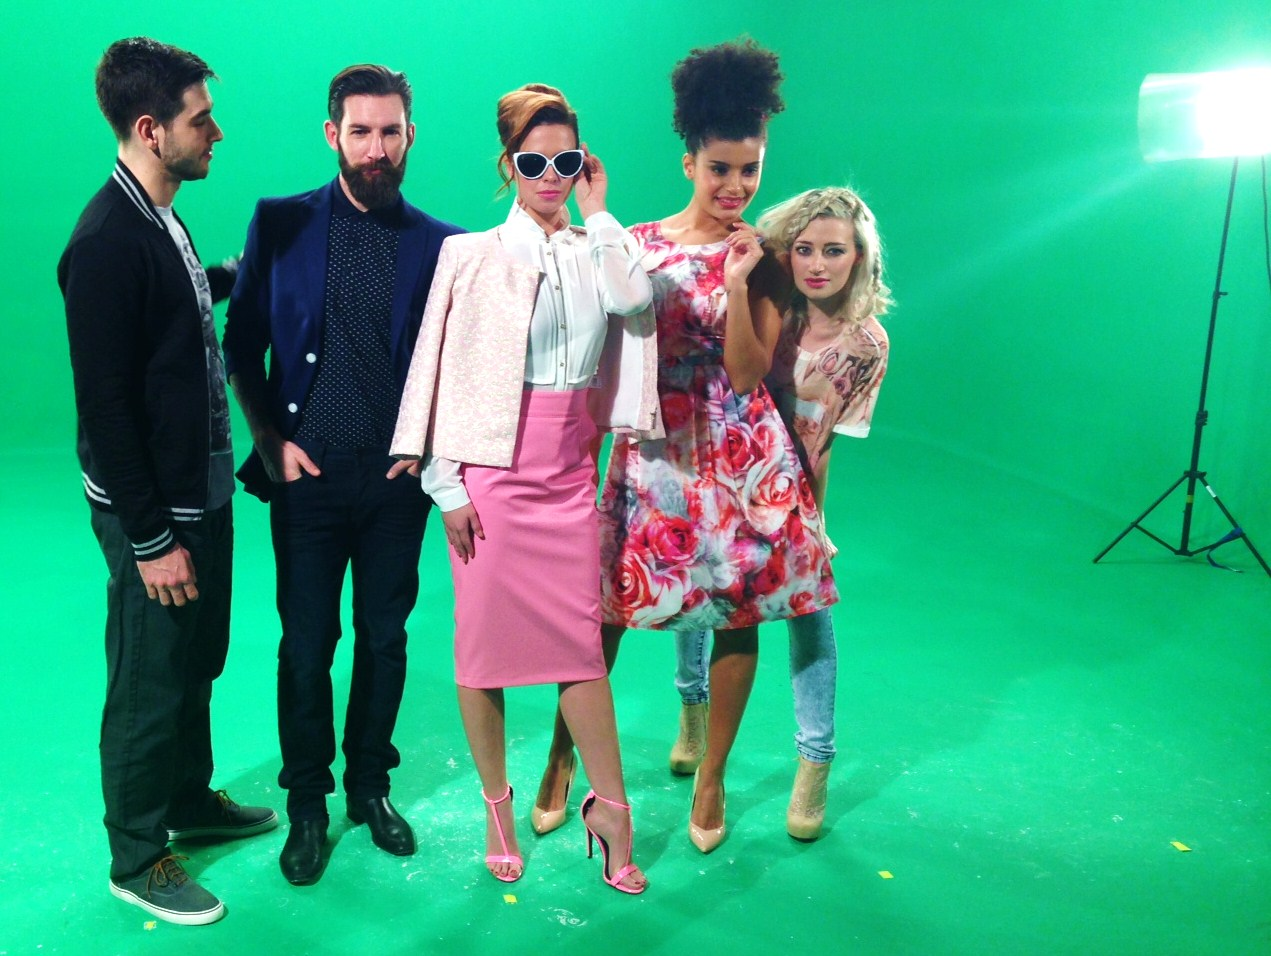 There are five models in the above picture, they are shown posing against a green screen wearing the latest spring summer fashion trends.